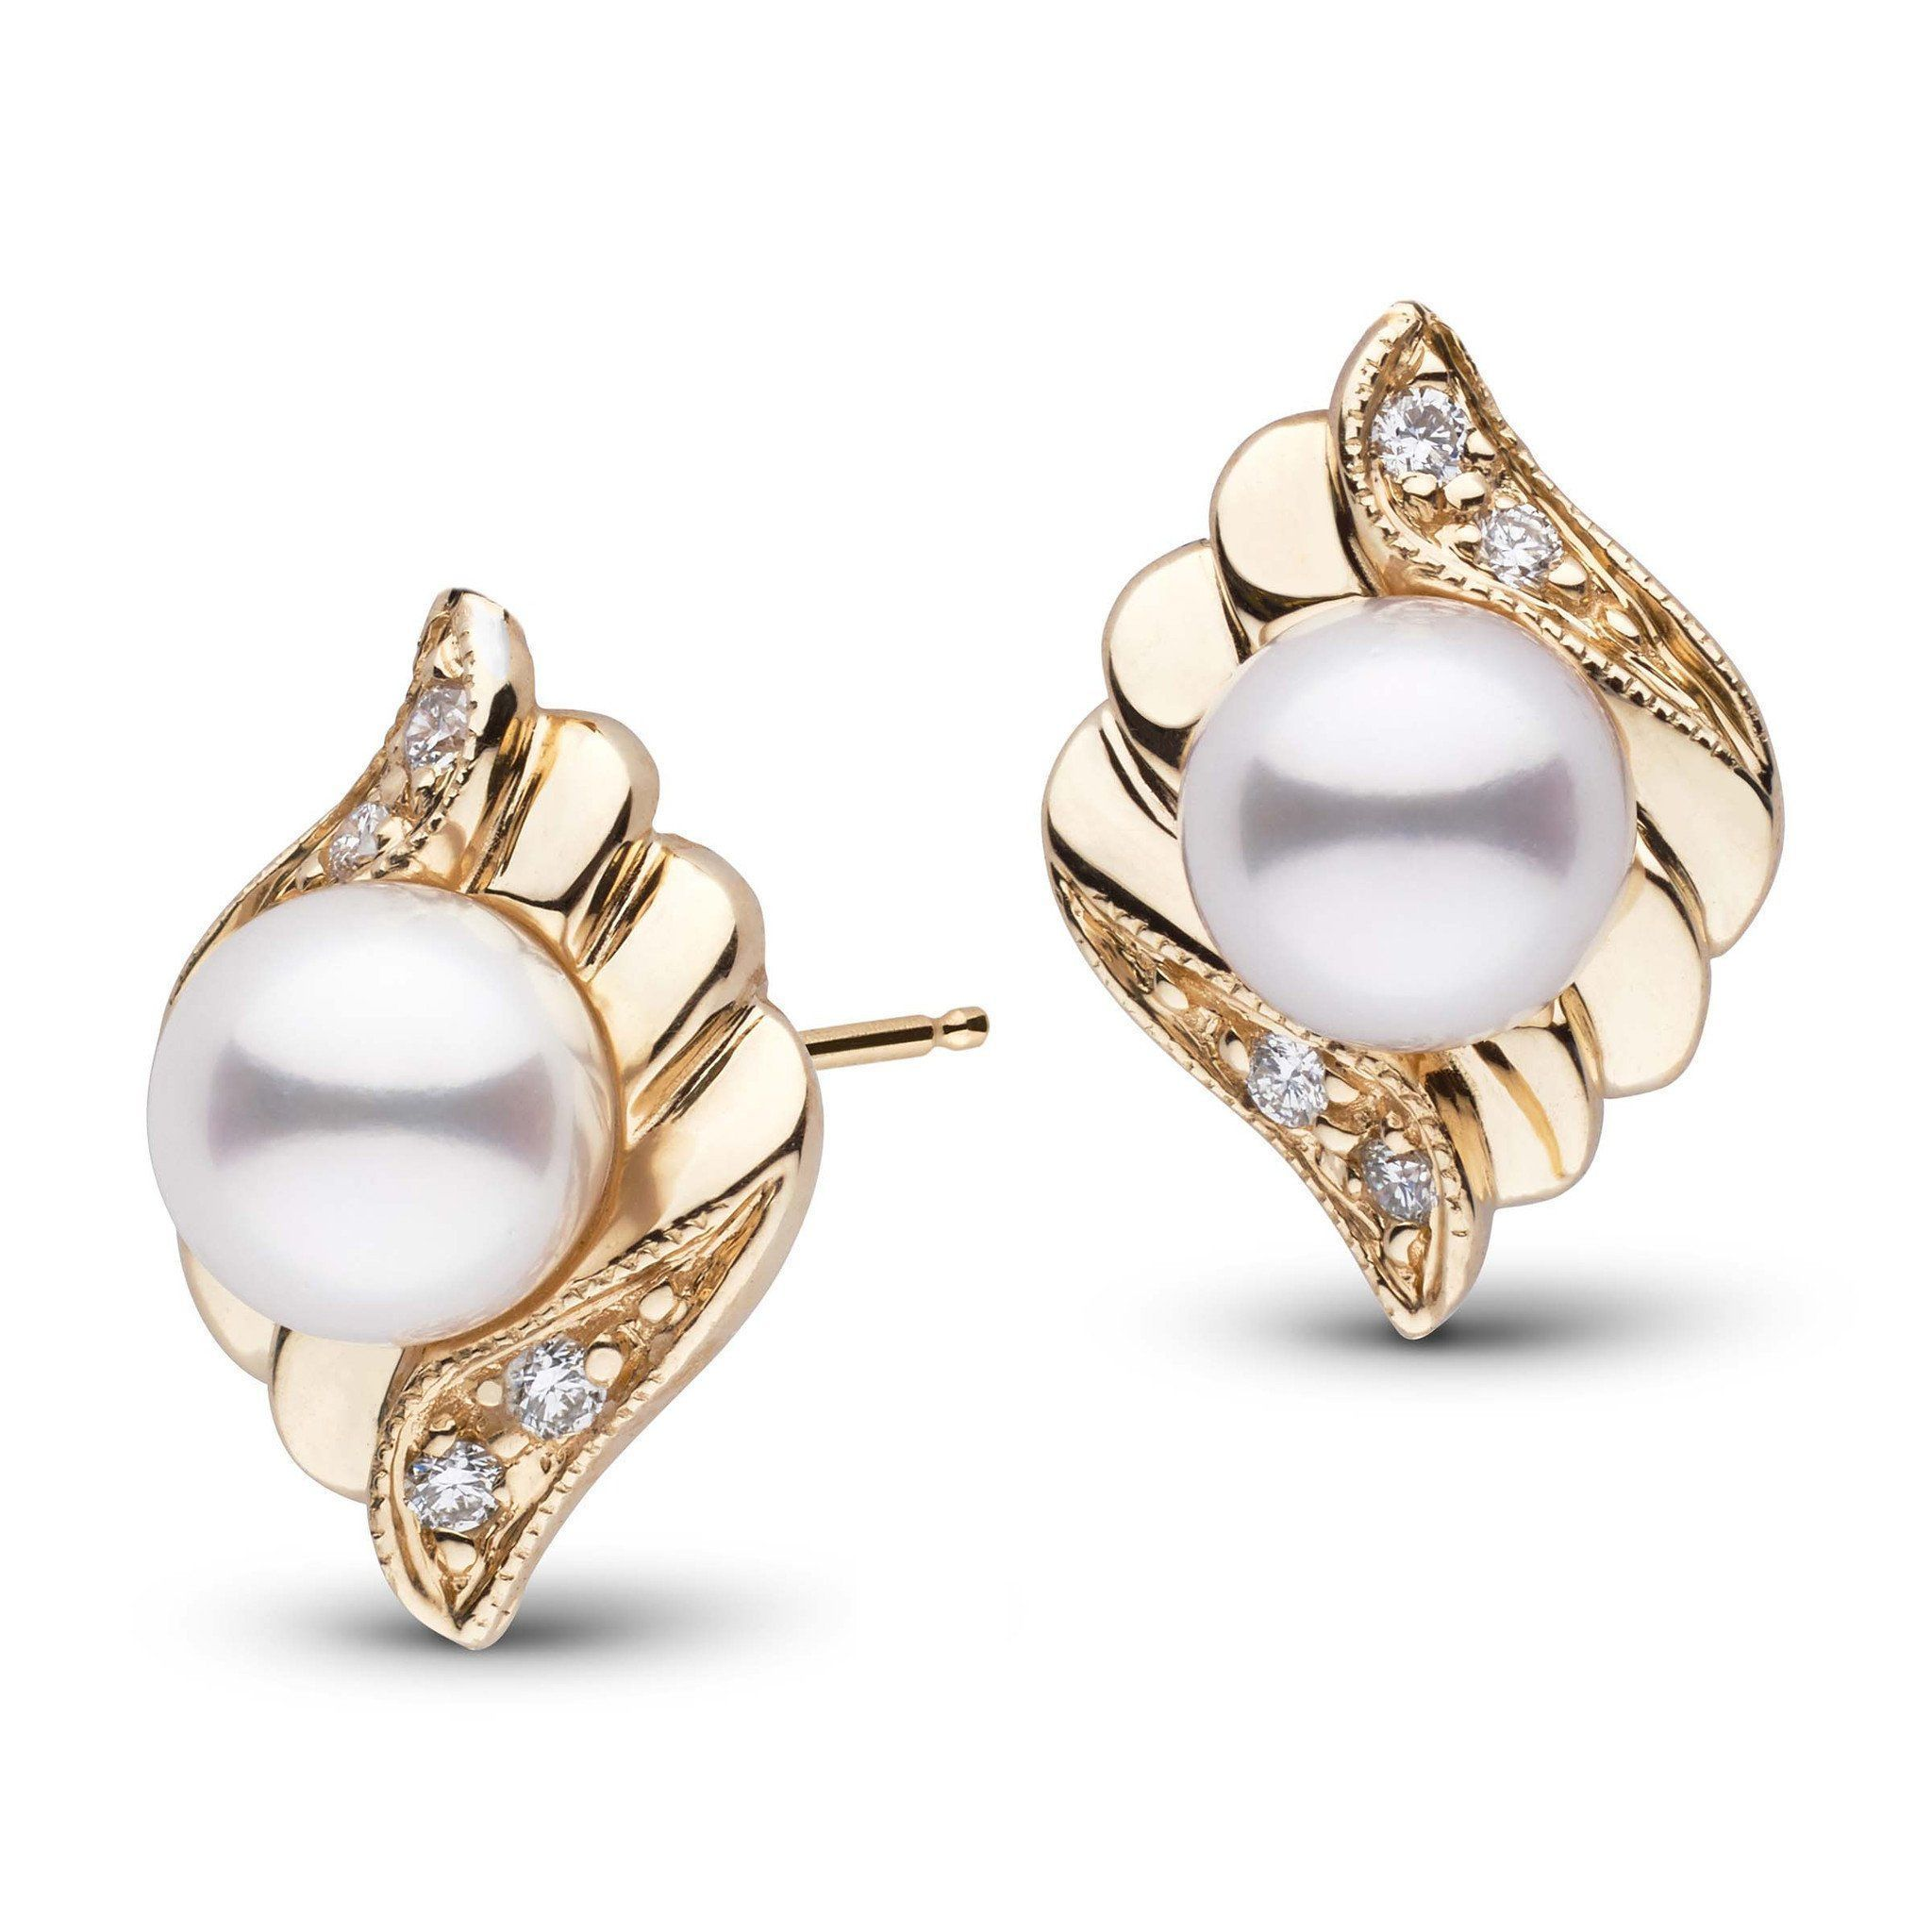 Julep Collection White Akoya Pearl and Diamond Earrings